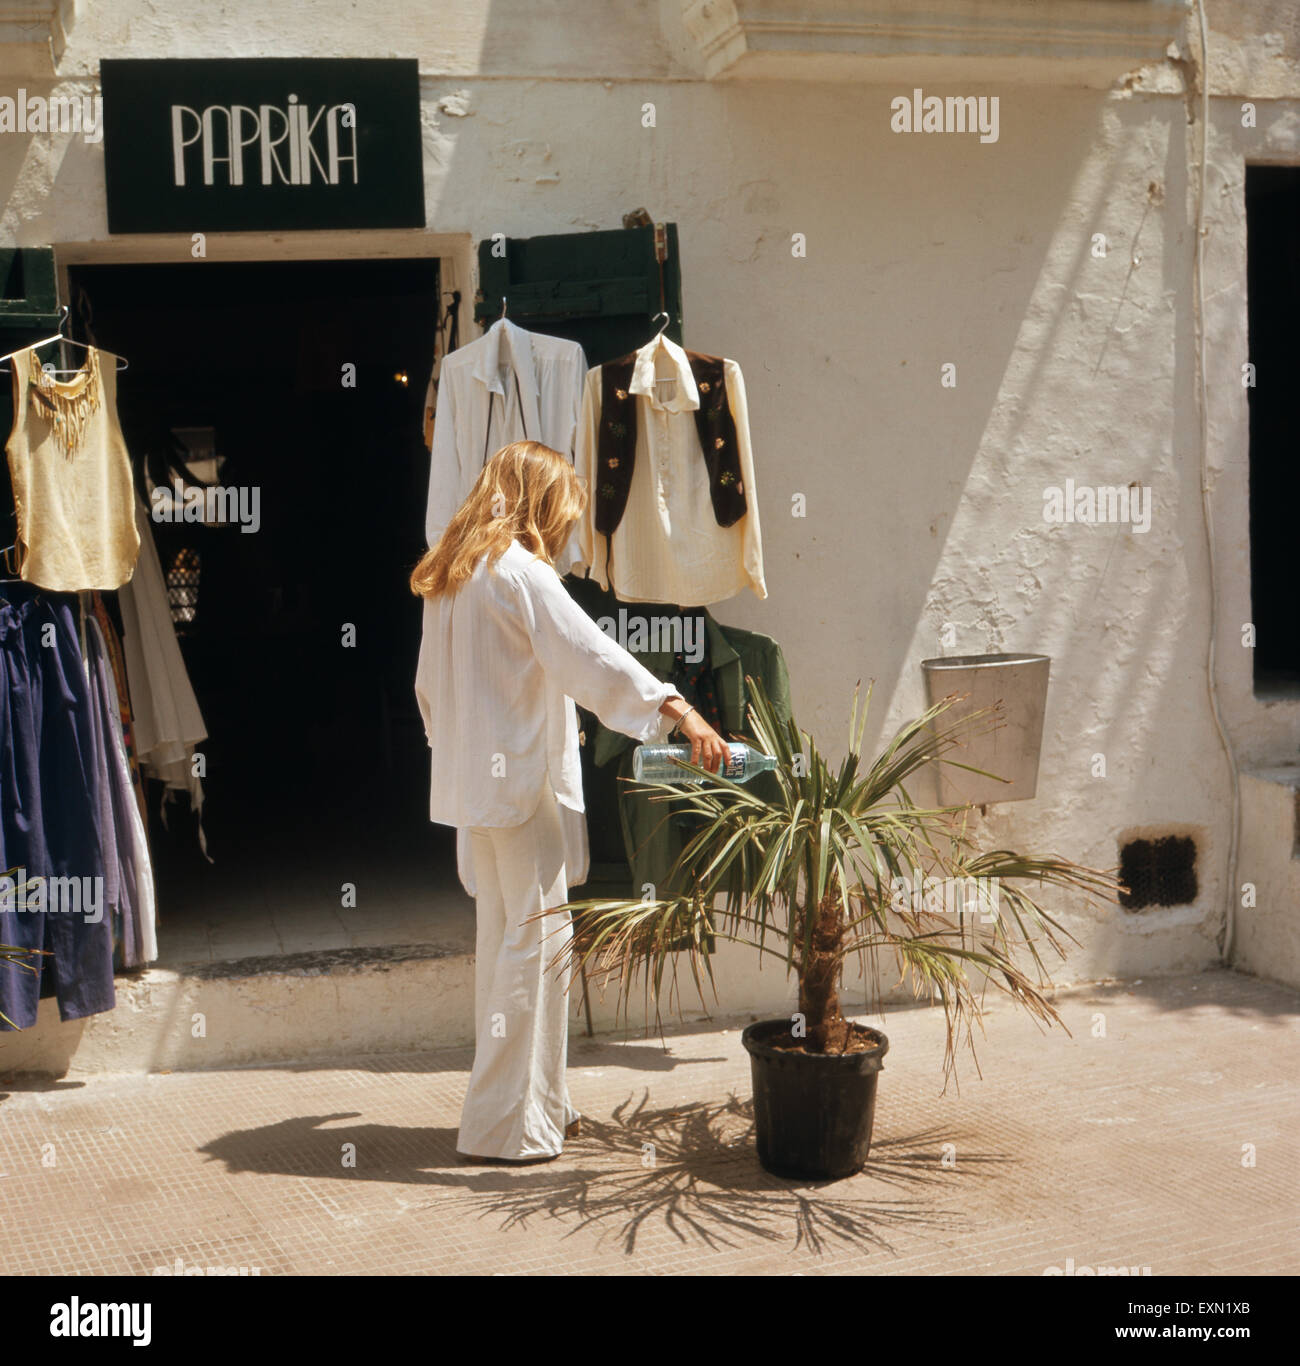 eine einkaufstour durch die boutiquen von ibiza stadt ibiza 1976 stock photo royalty free. Black Bedroom Furniture Sets. Home Design Ideas